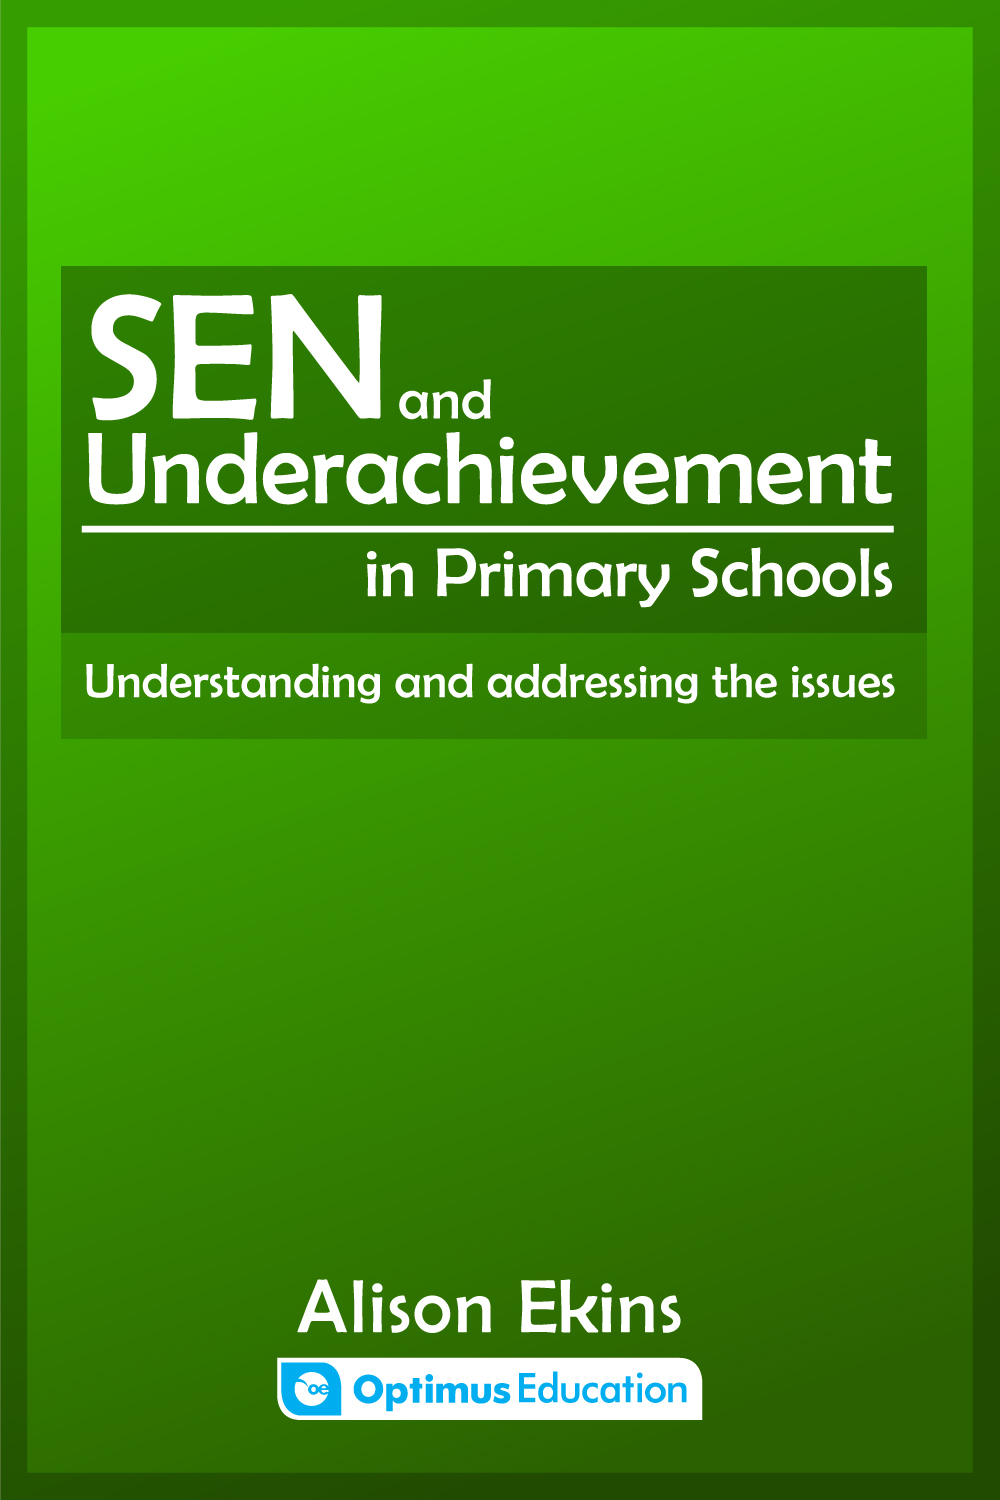 SEN and Underachievement in Primary School: Exploring the differences